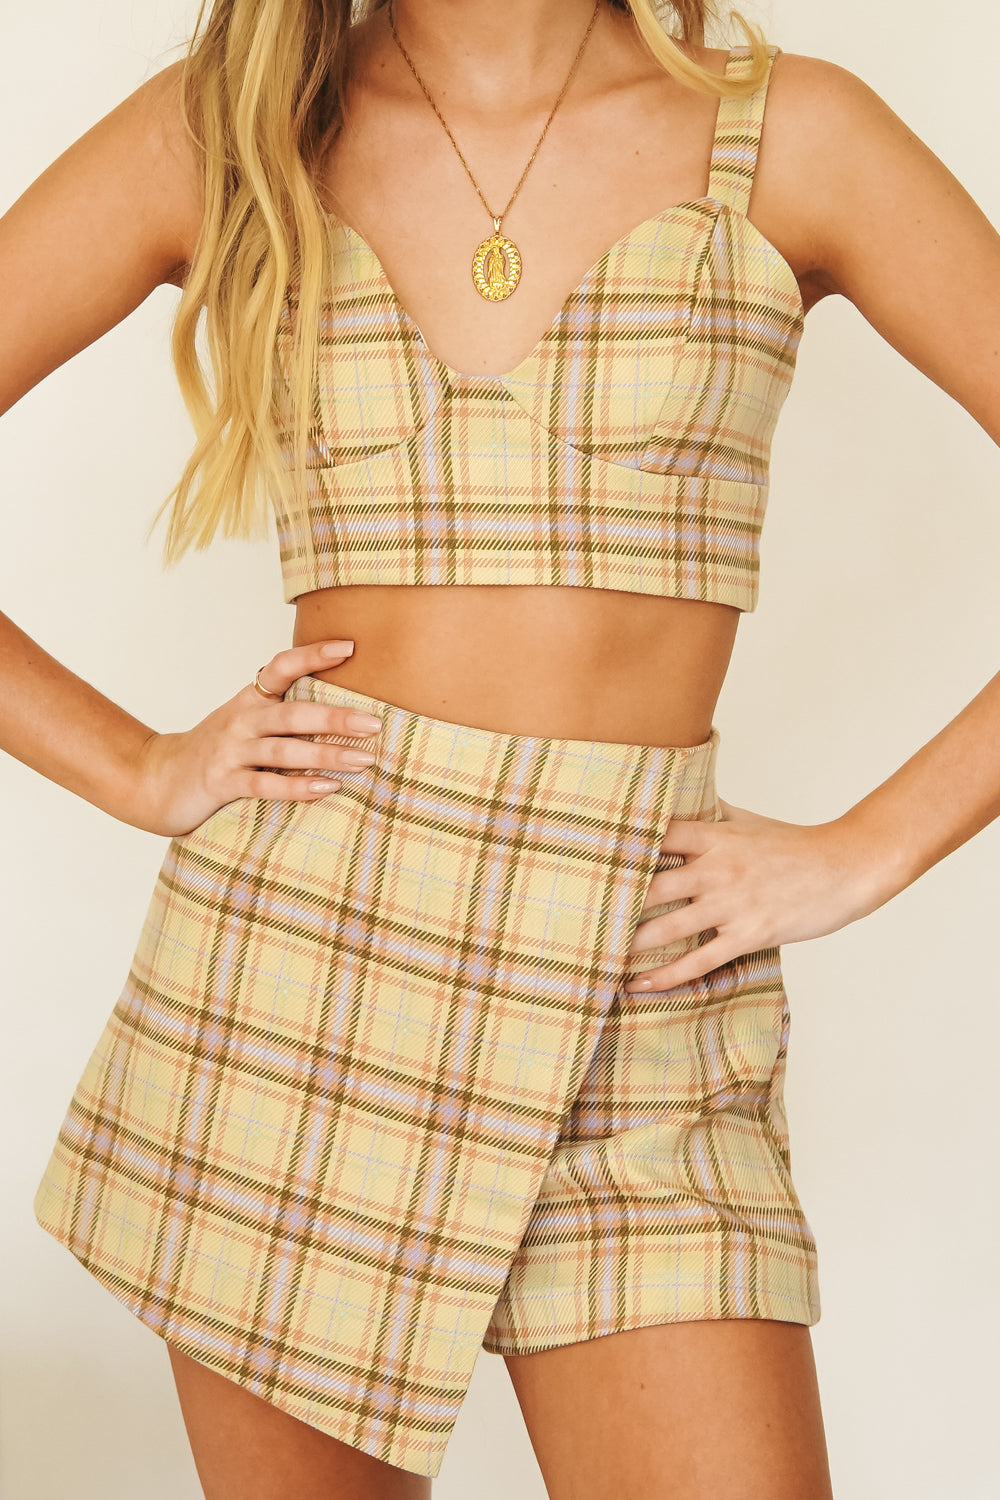 Cool Girl Summer Check Top // Sand